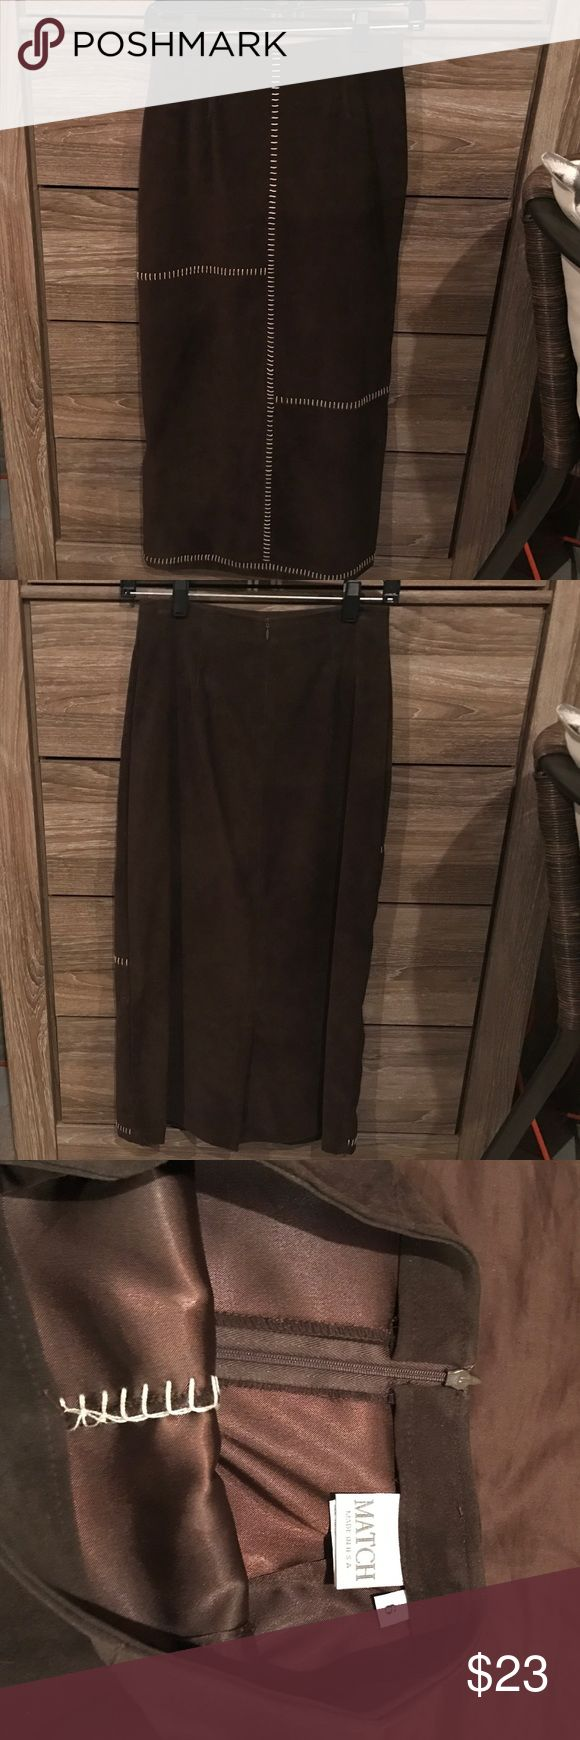 Long soft dark chocolate brown pencil skirt A super soft pencil skirt with tan stitching going down the front. Has a small slit in the back and a small zipper in the back to zip up around the waist. I love this skirt with a tan blazer. Only worn once. Very good condition! Skirts Pencil